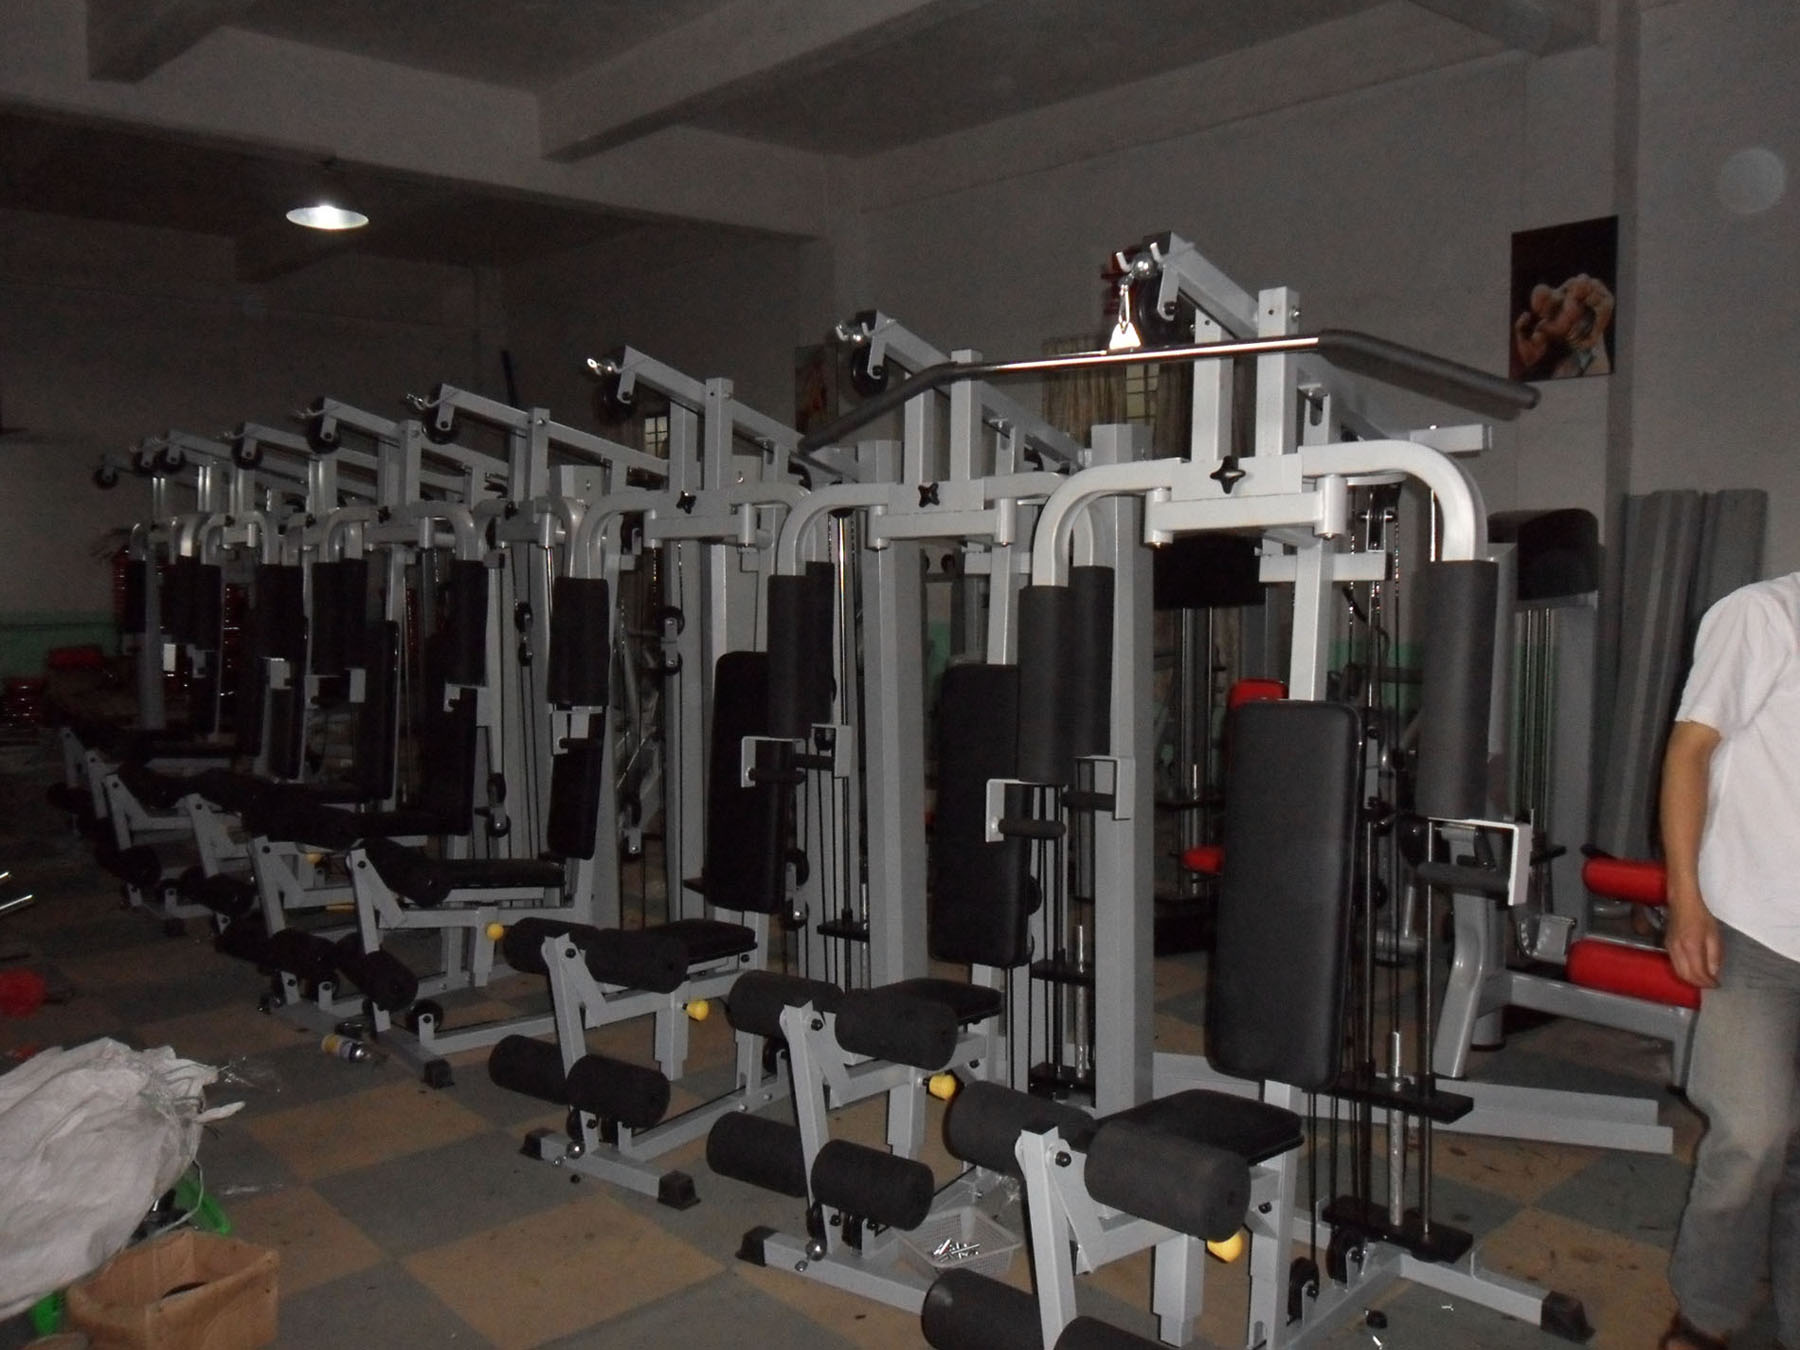 Exhibition Hall (fitness equipment)